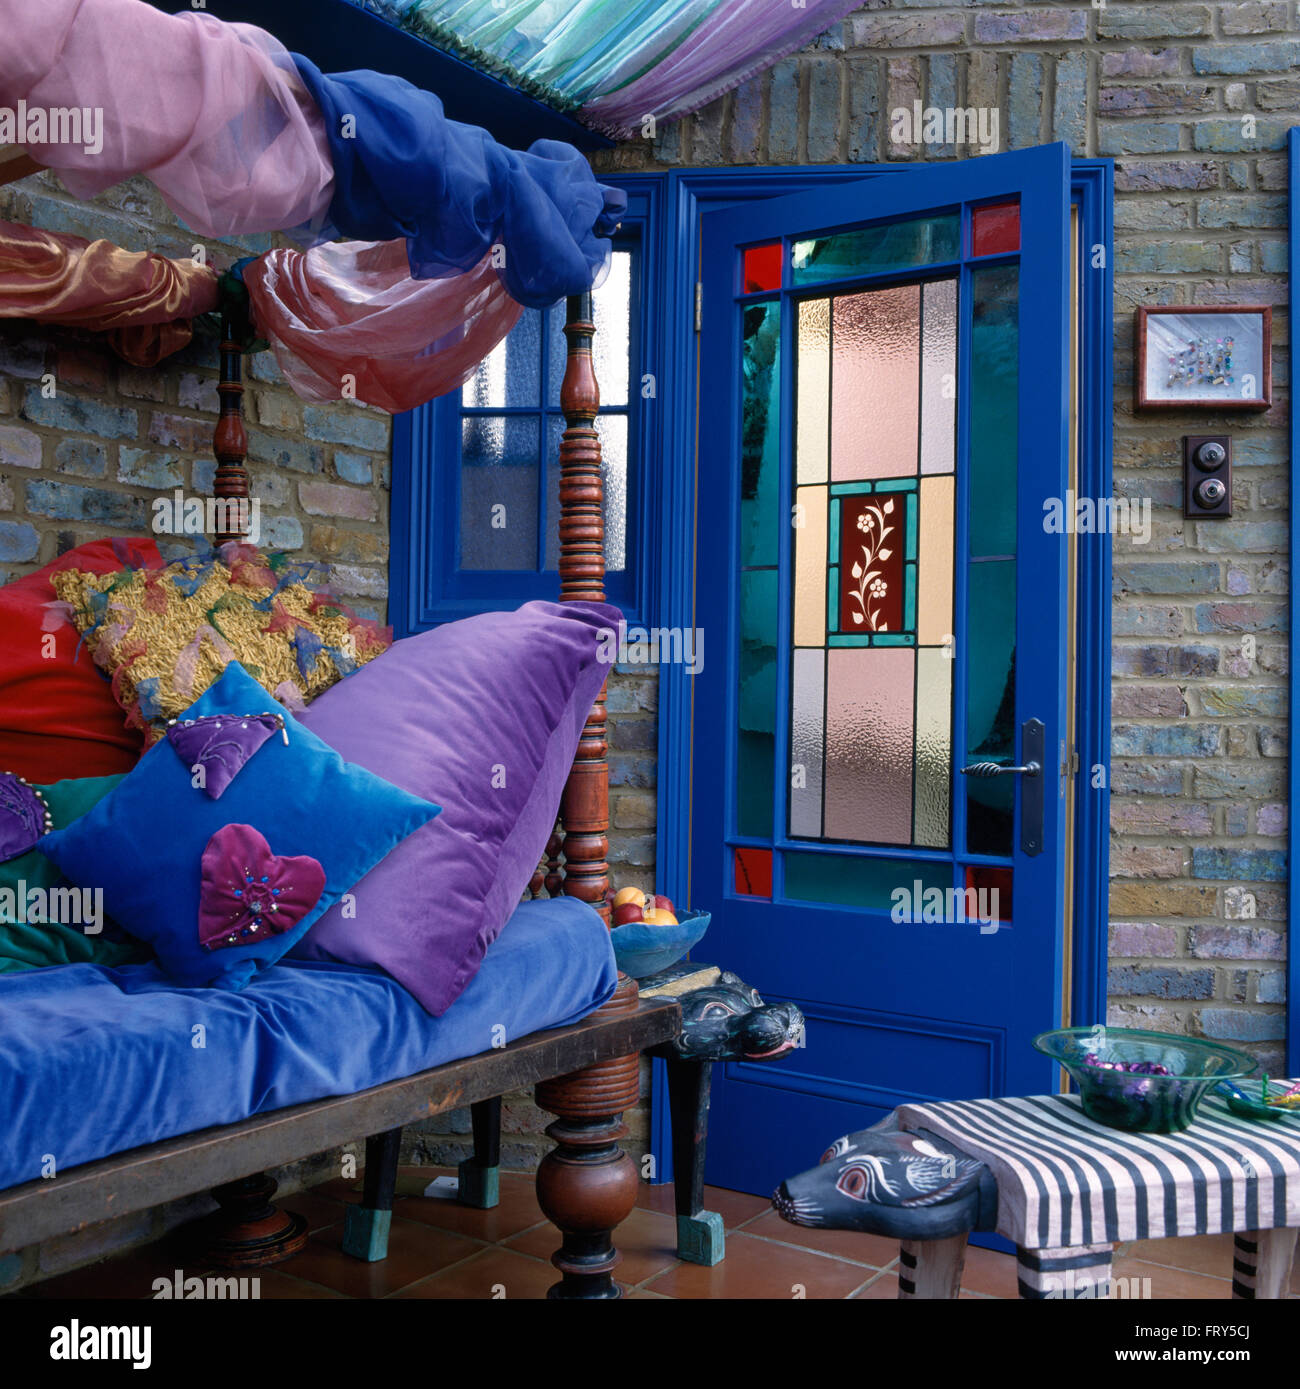 living rooms indian style ideas to decorate my small room velvet cushions on sofa in nineties with a stained glass panel bright blue door